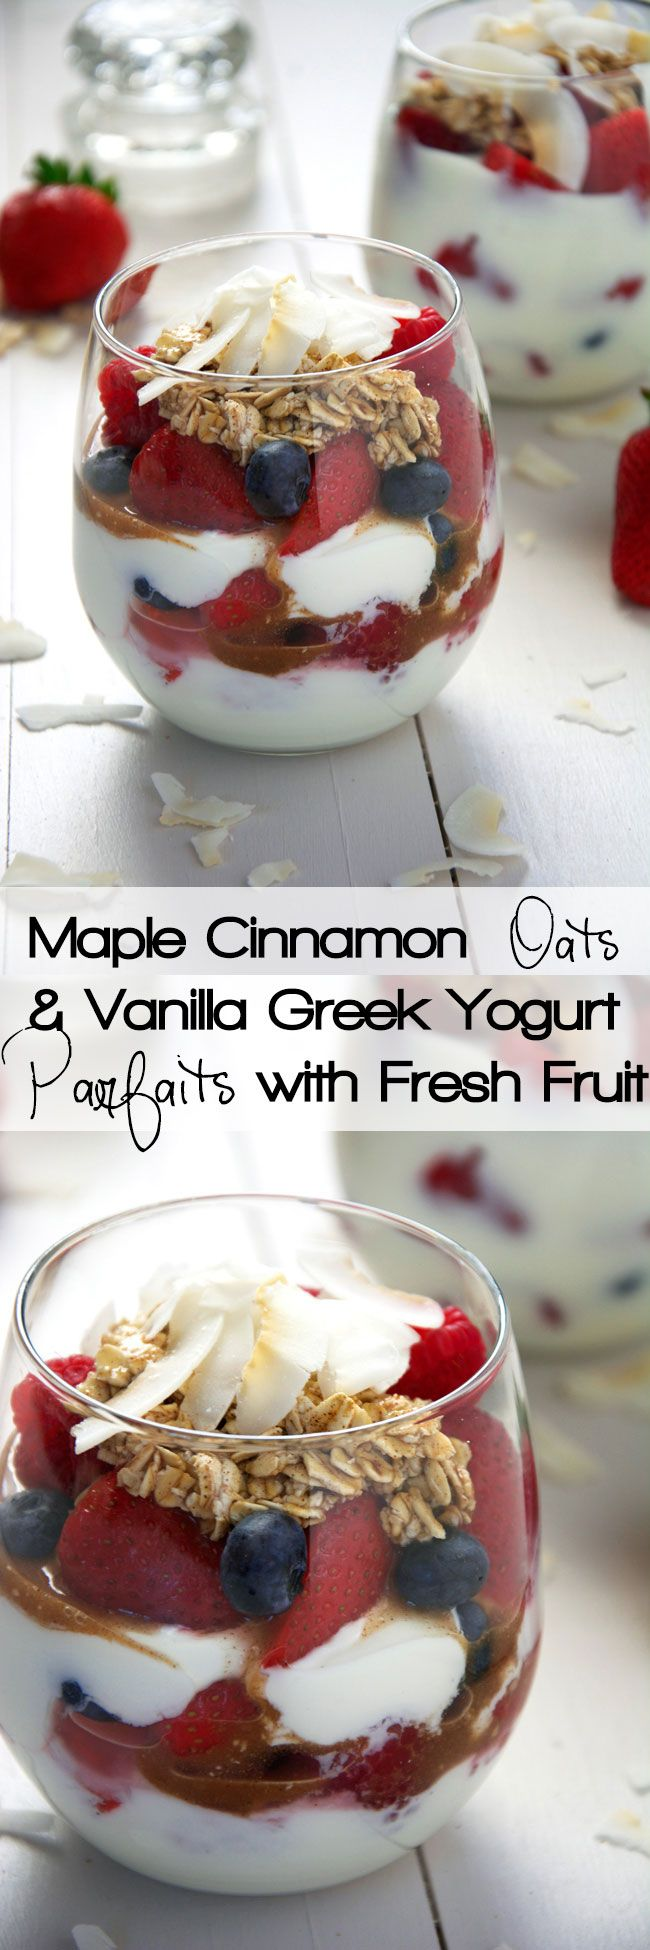 Maple Cinnamon Oats and Vanilla Greek Yogurt Parfaits with Fresh Fruit